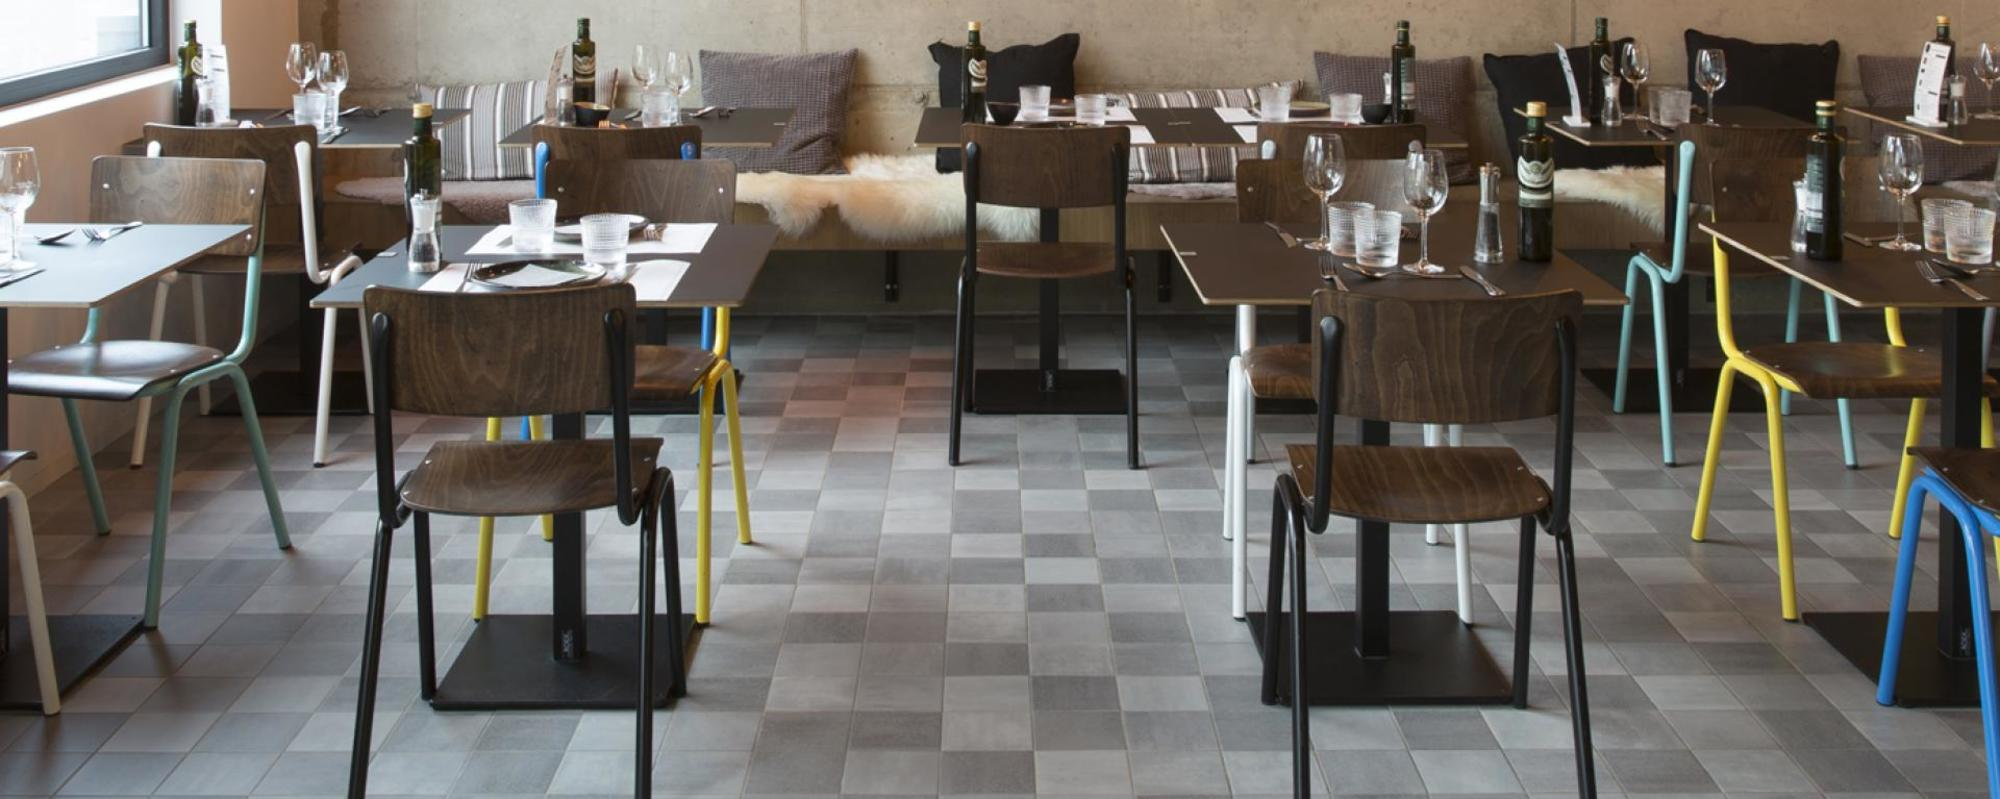 Peppe's trattoria Genk UAU collectiv MOSA Scenes cool grey 6120V grain + 6121V clay + 6122V sand + 6123V grit 15x15